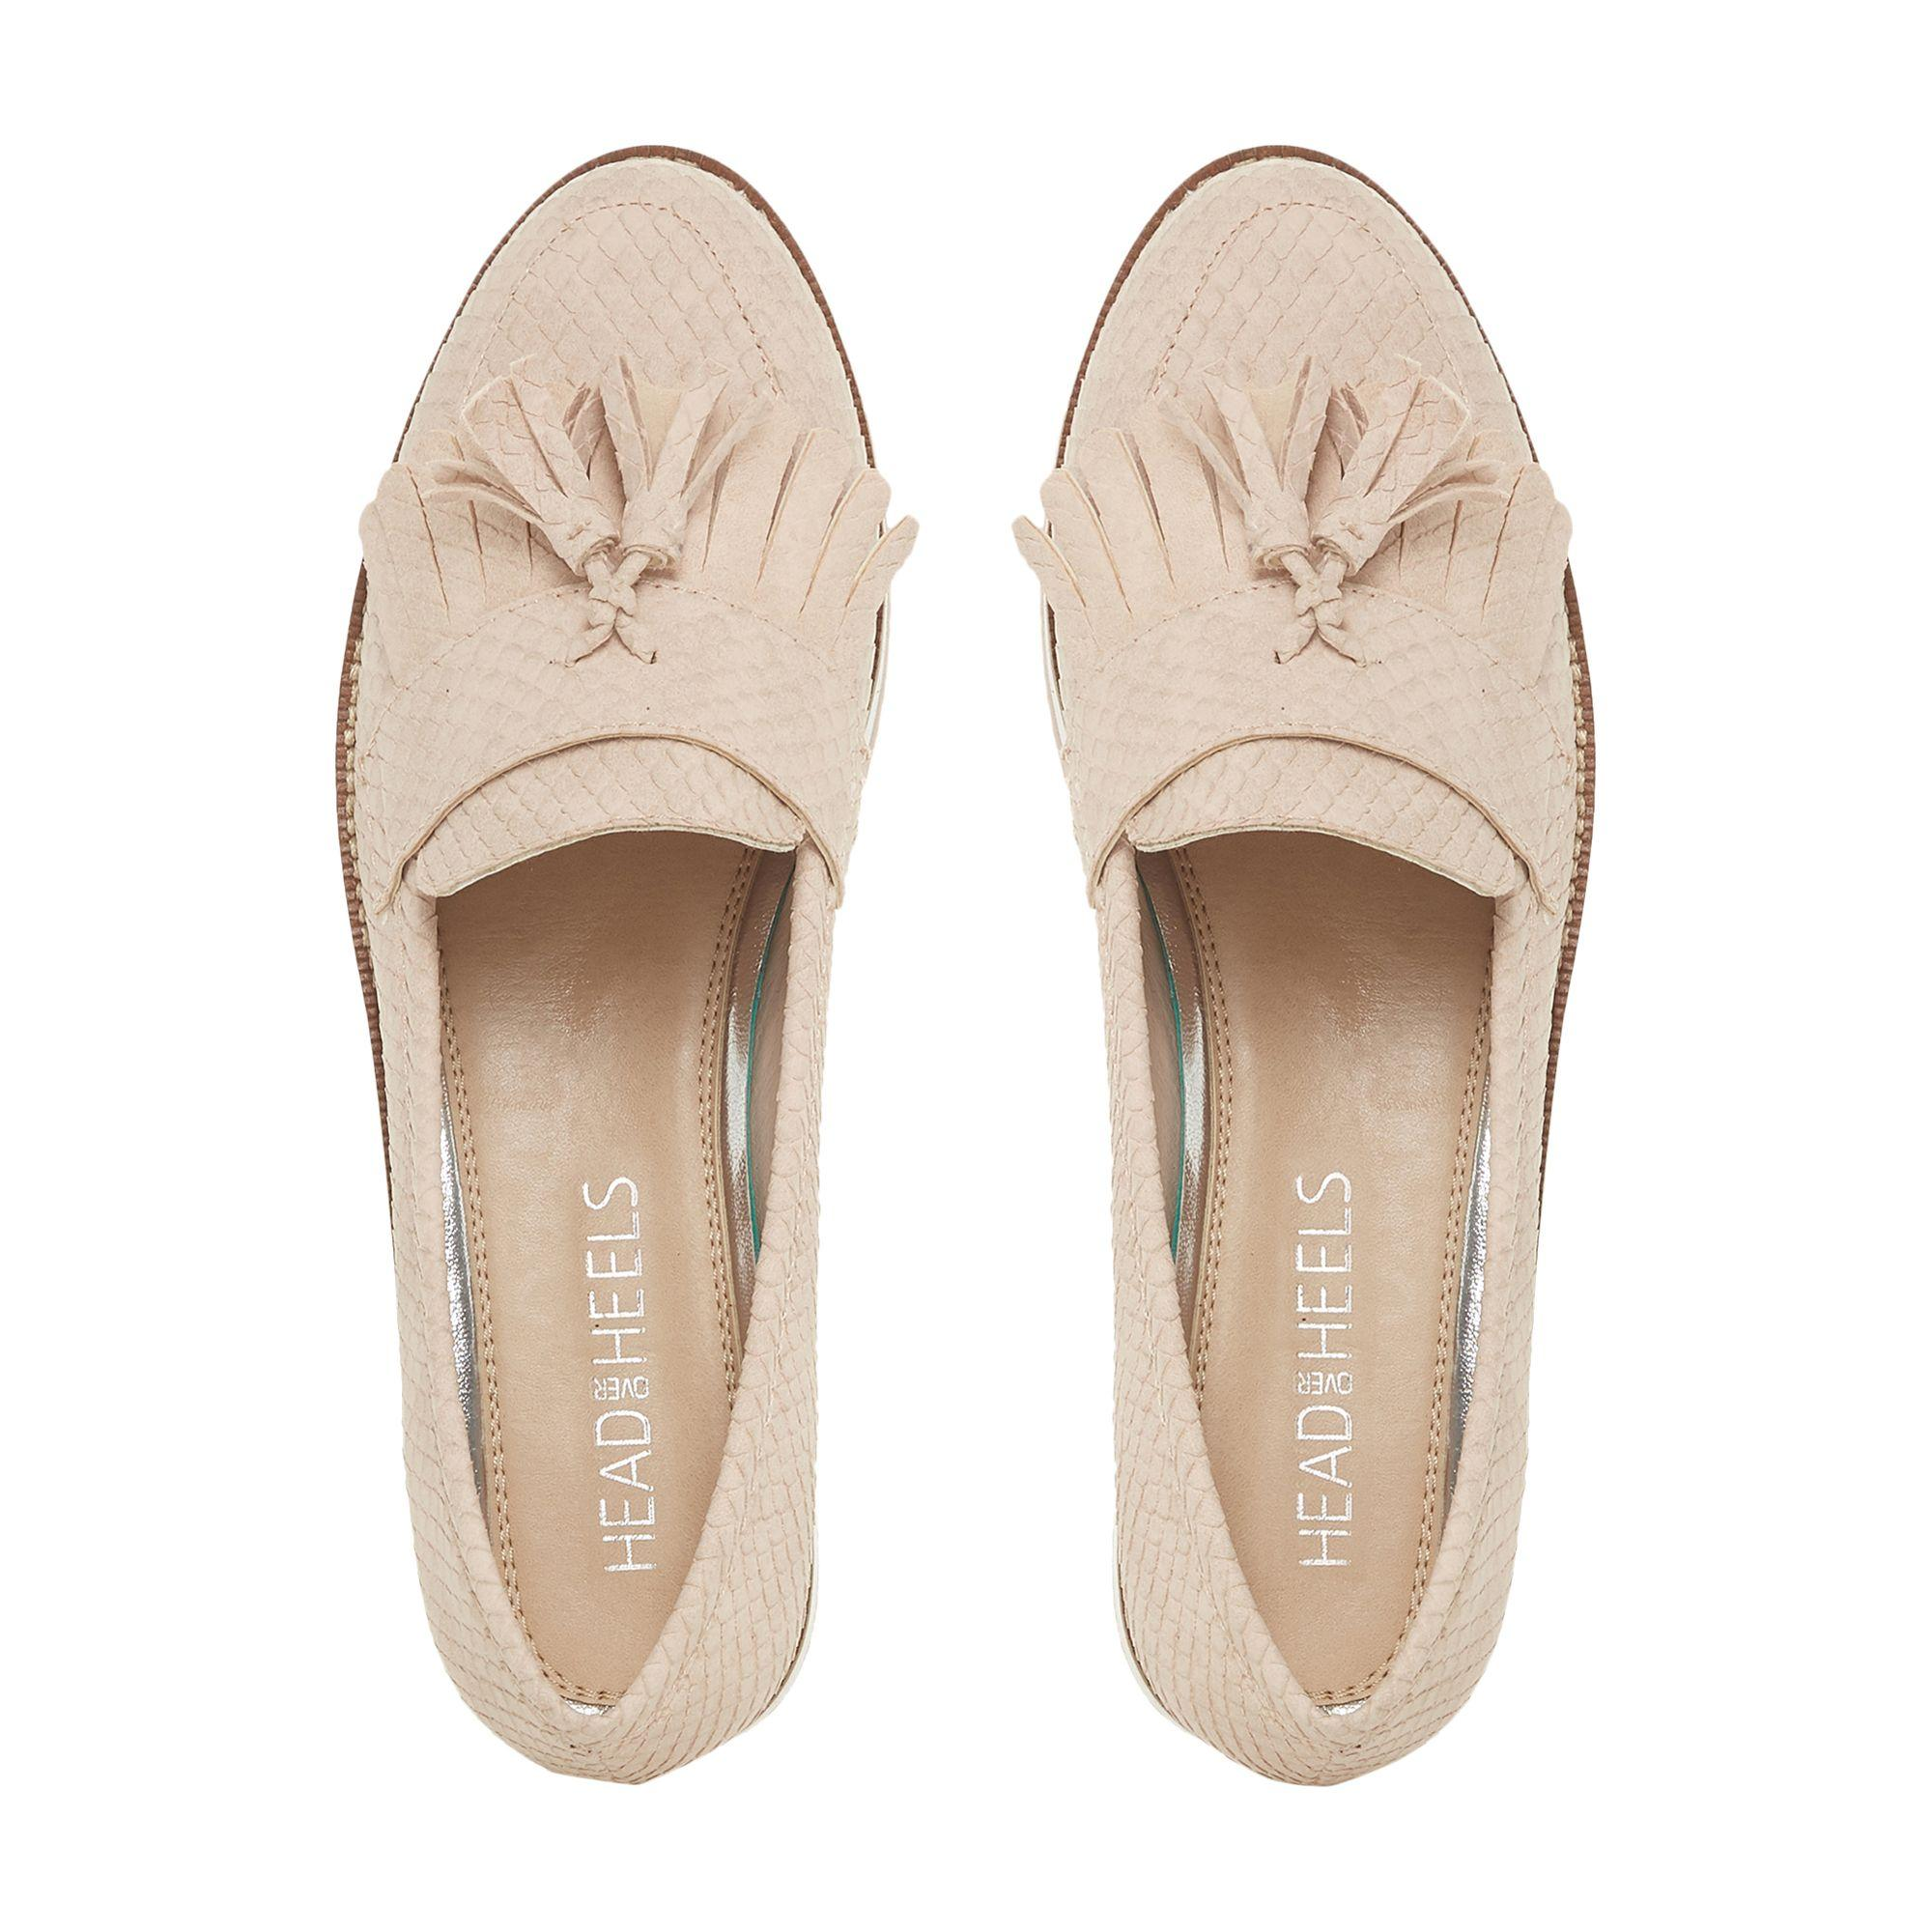 22077fd6785 Dune - Natural  gillys  Mid Wedge Heel Loafers - Lyst. View fullscreen